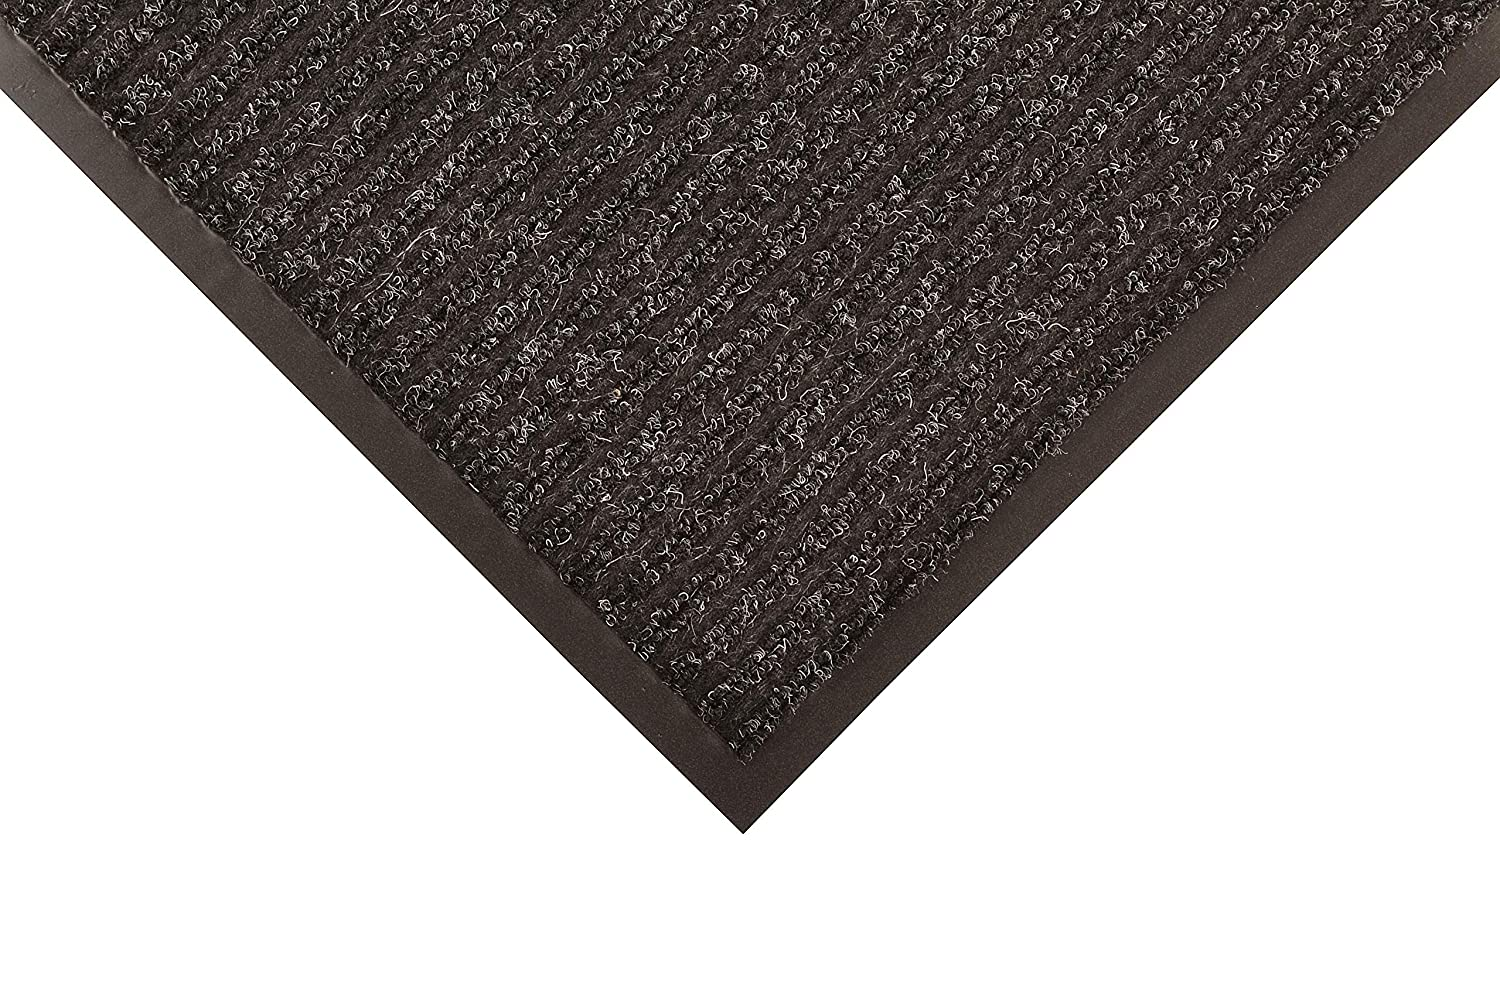 Notrax 117 Heritage Rib Entrance Mat, for Home or Office, 3'10' Charcoal